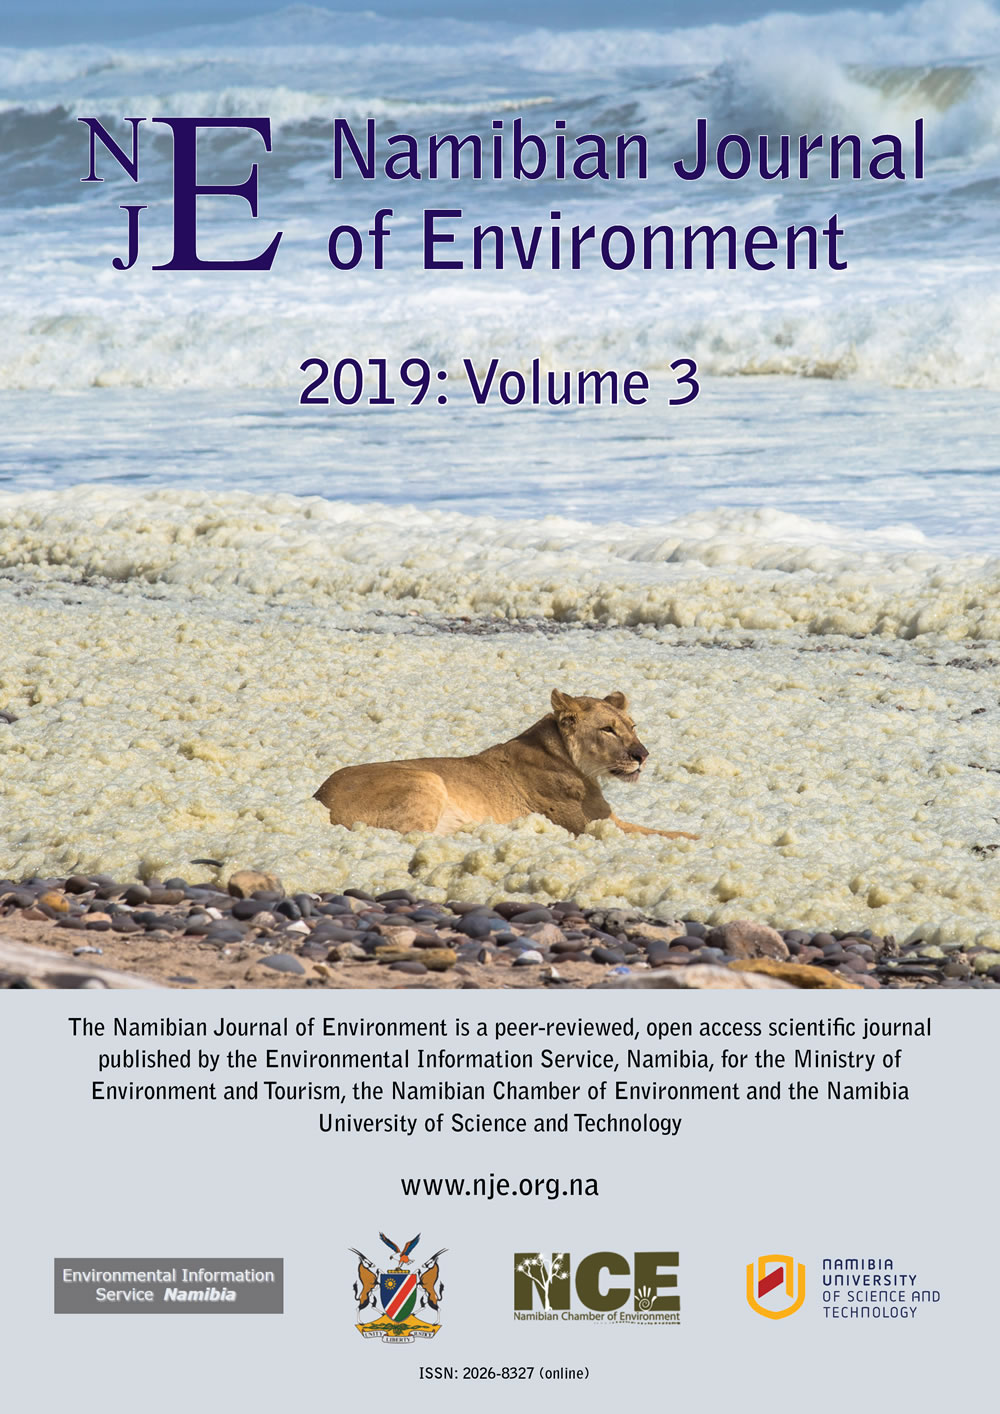 Cover of Namibian Journal of Environment 2019 Volume 3